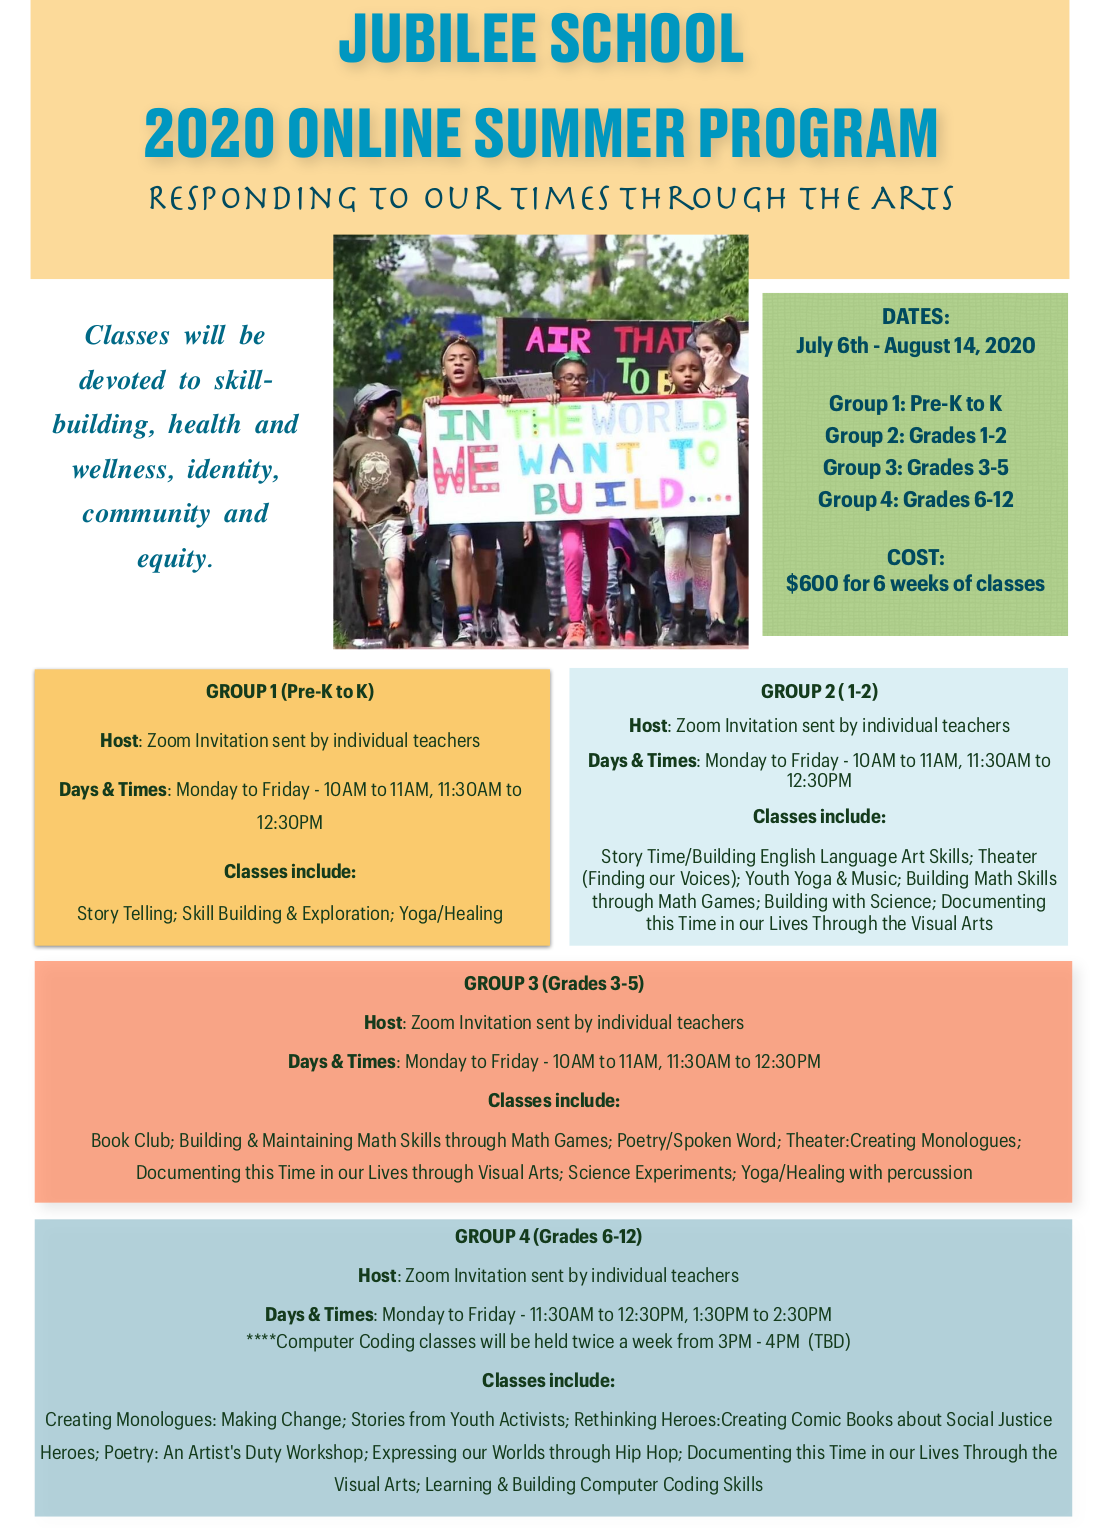 Summer_Program_Flyer_2020